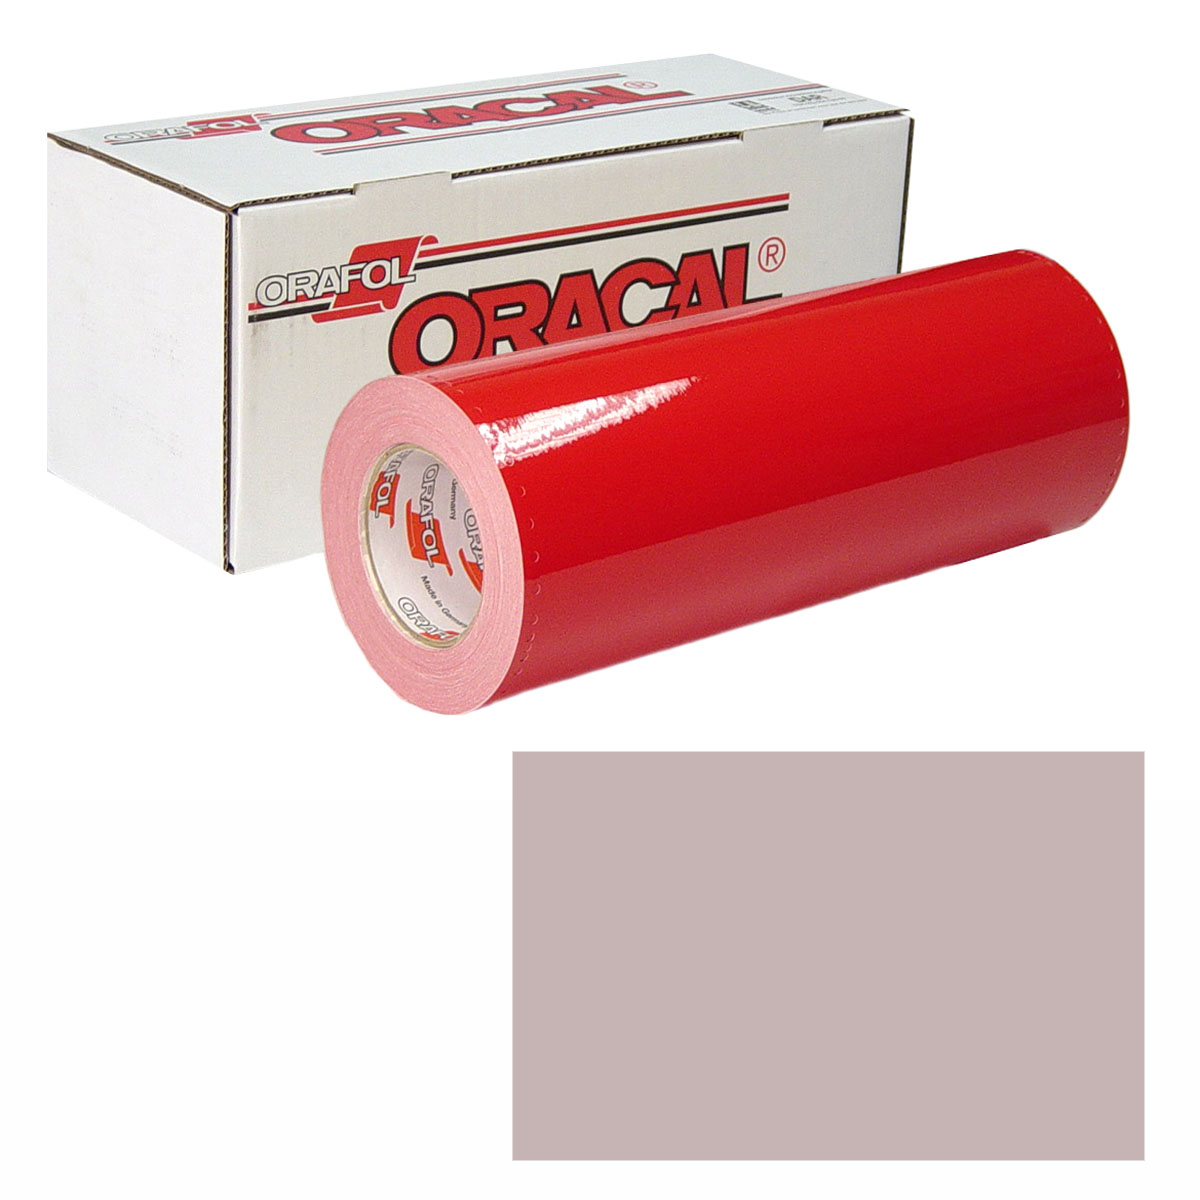 ORACAL 951M 30In X 10Yd 924 Champagne